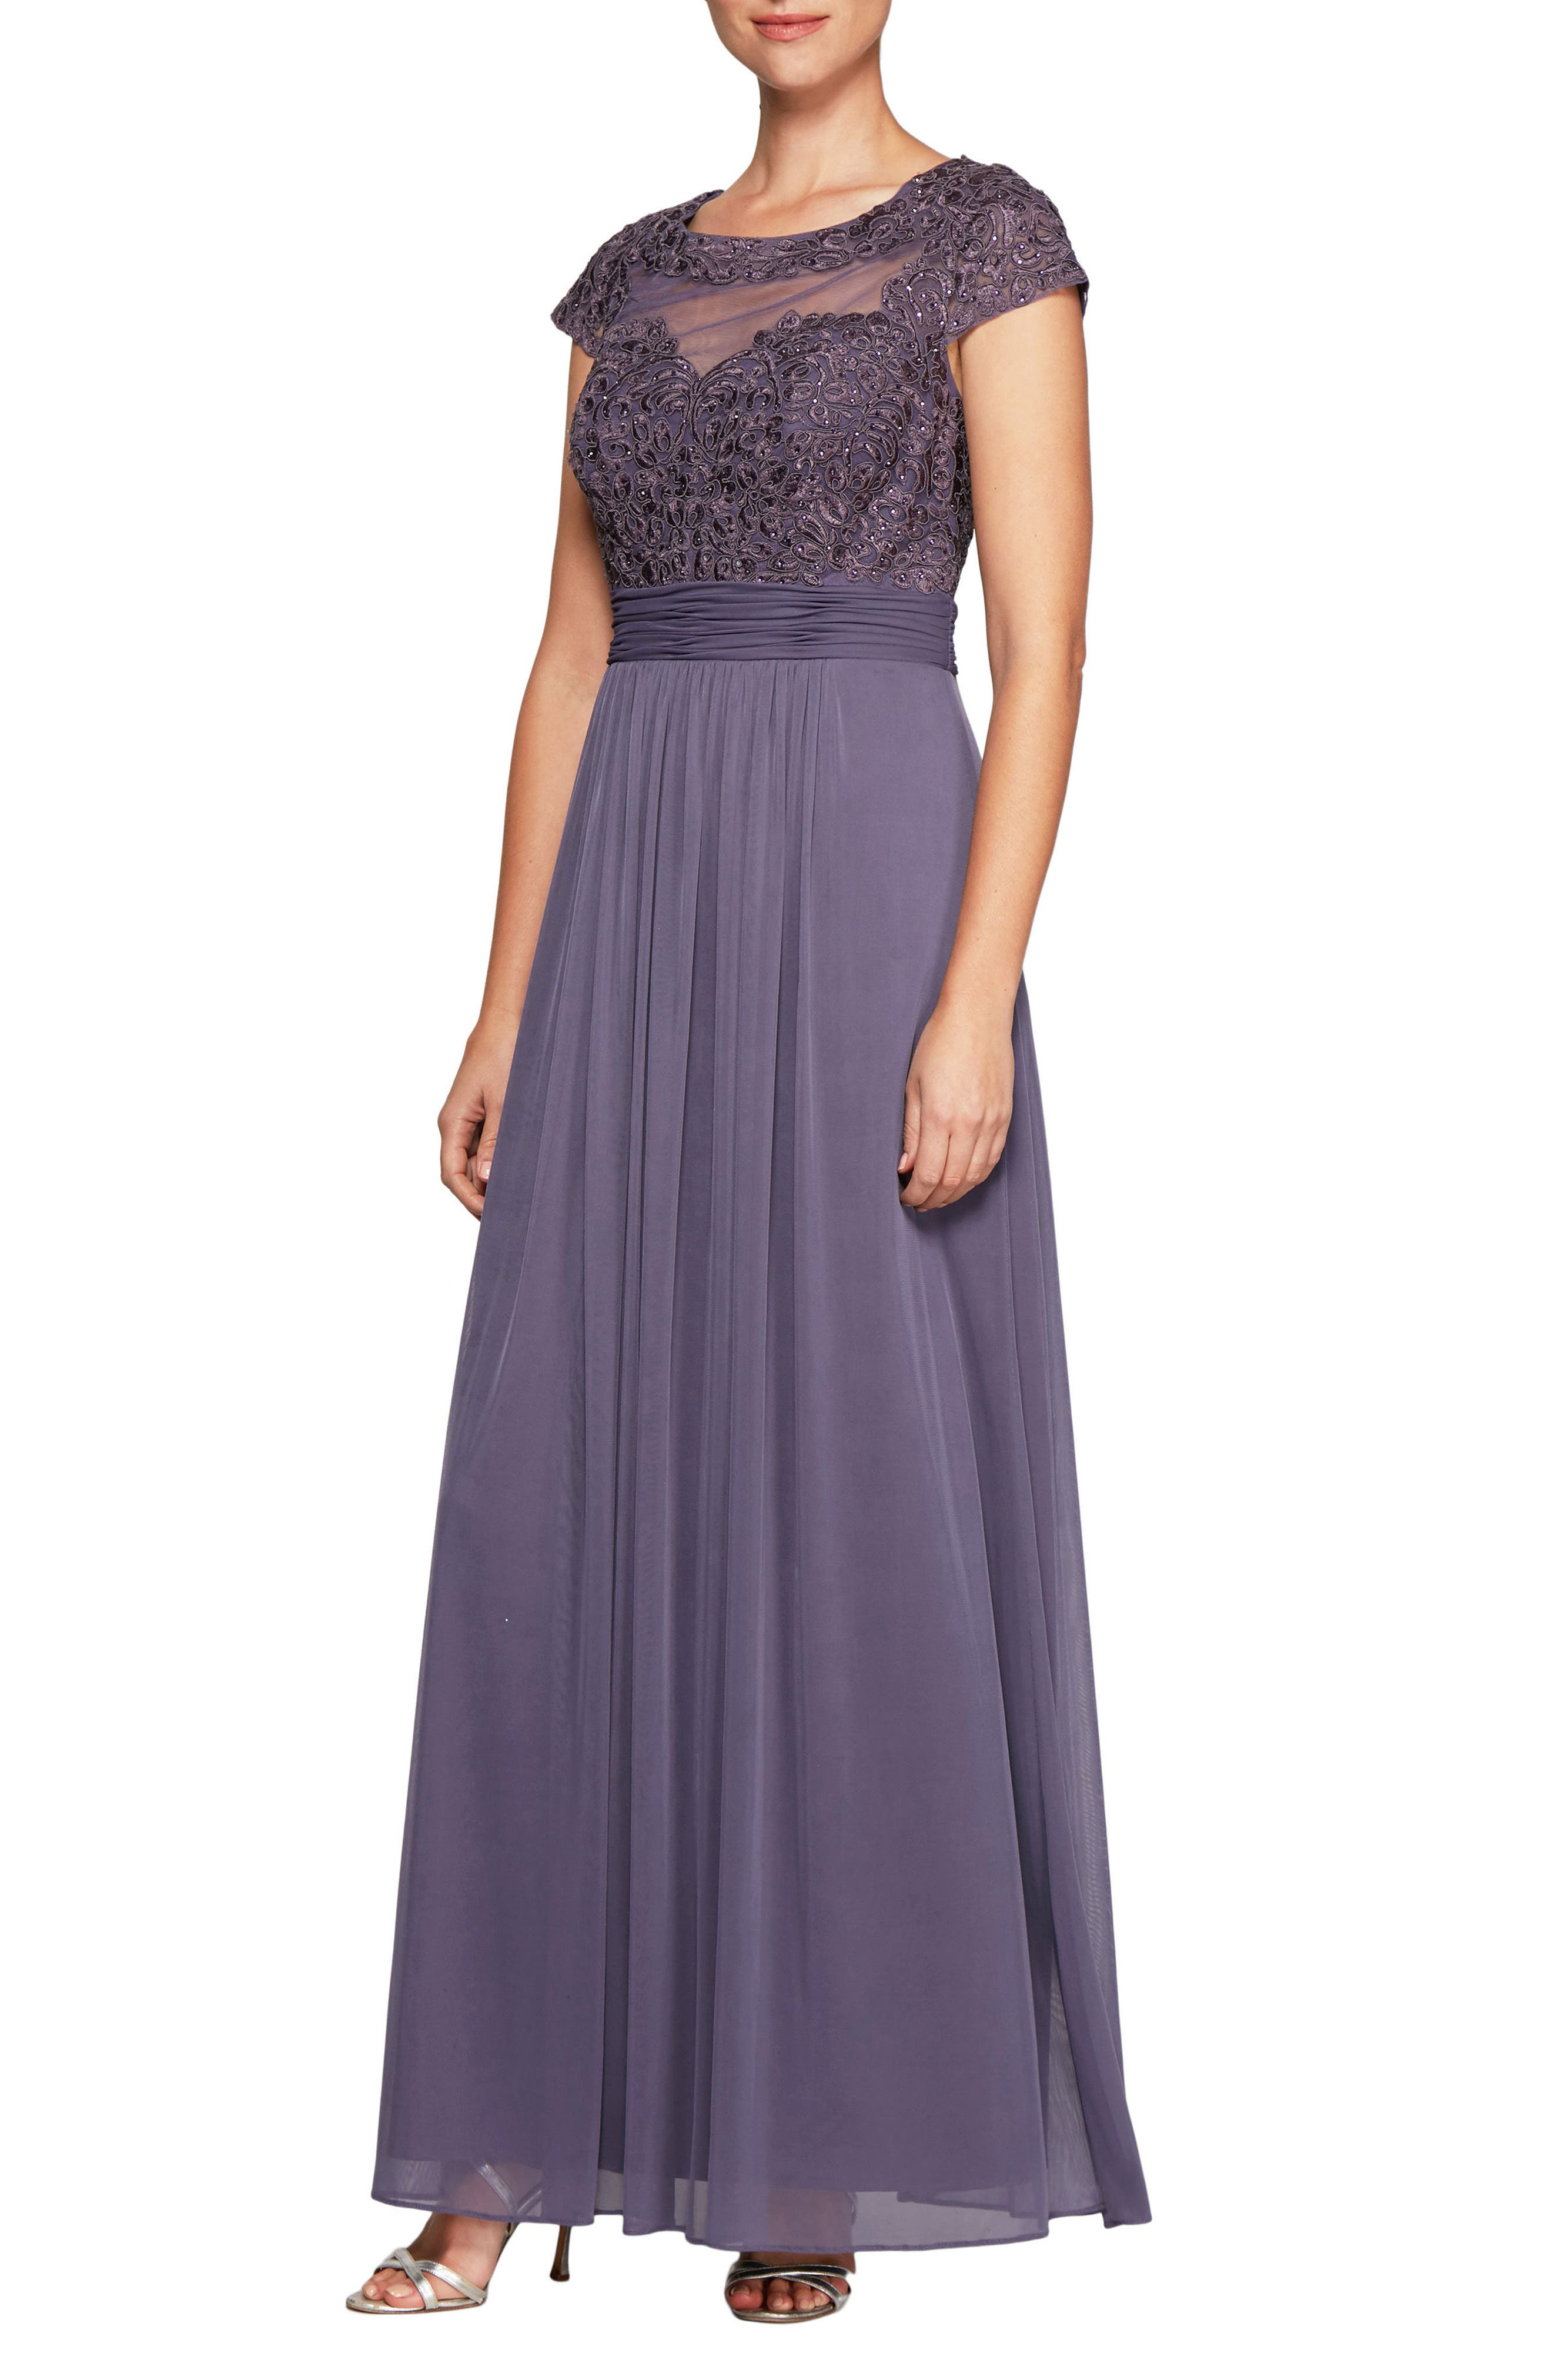 Alternate Image 1 Selected - Alex Evenings Embroidered A-Line Gown